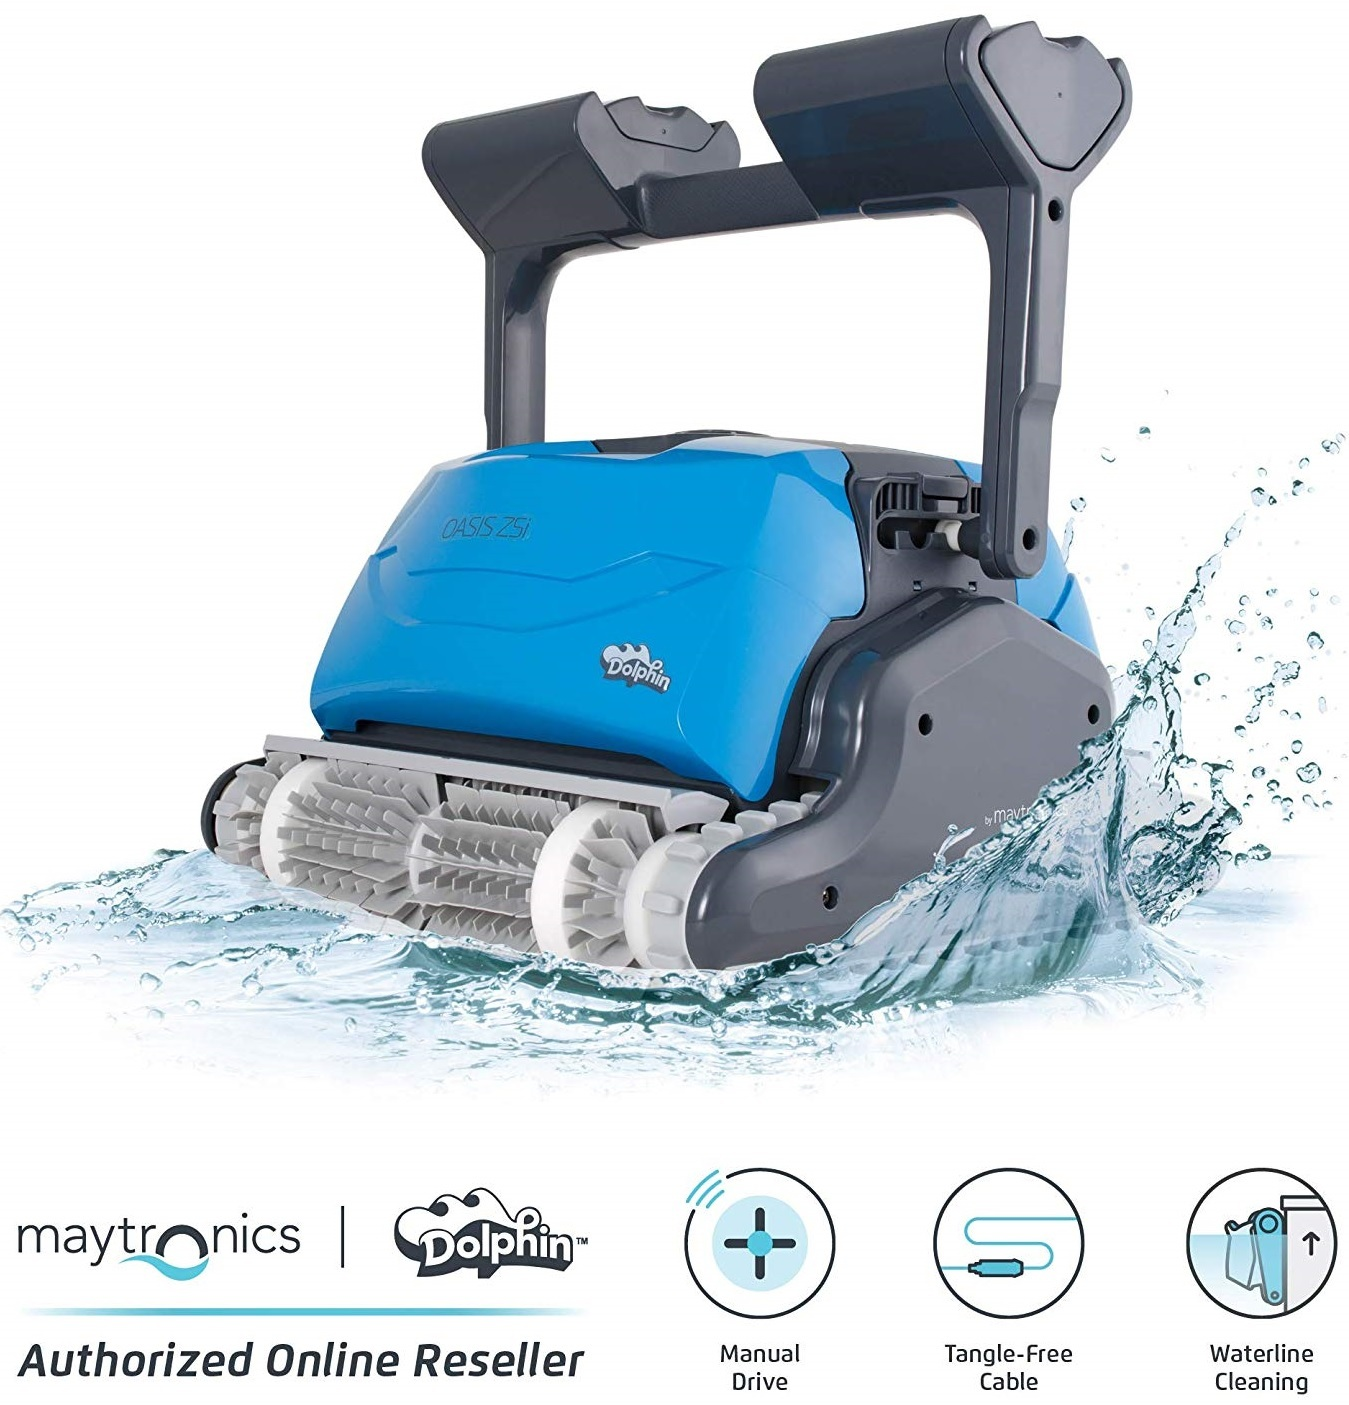 DOLPHIN Oasis Z5i Robotic Pool Cleaner Reviews